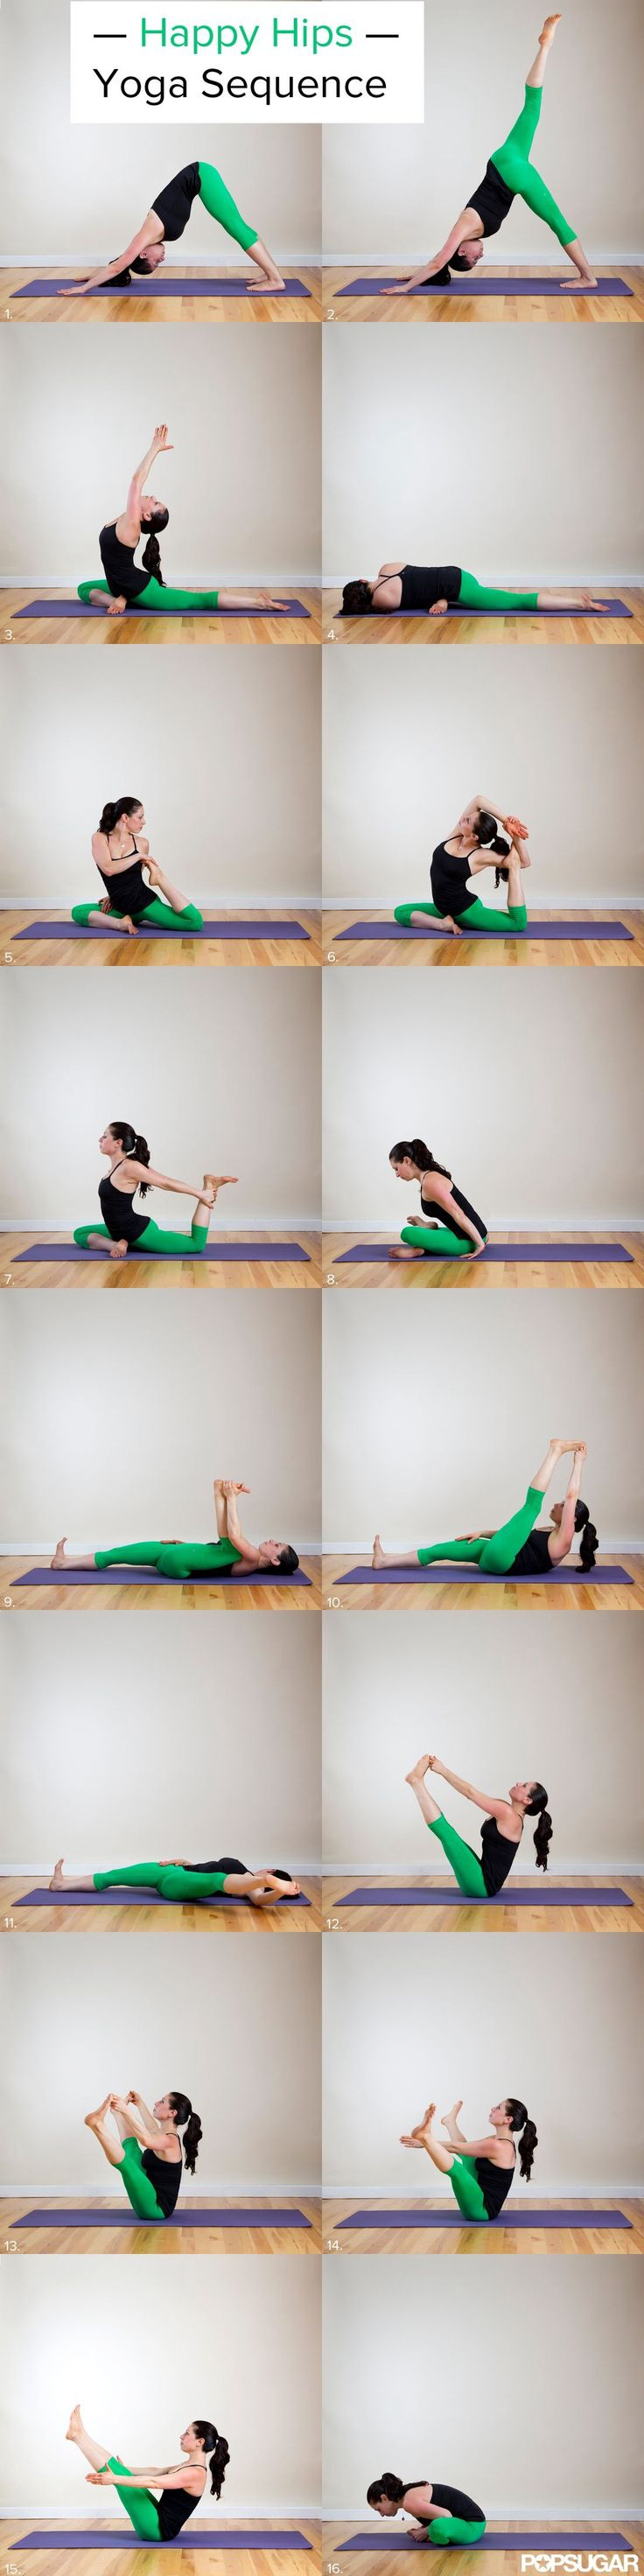 Yoga stretching tips